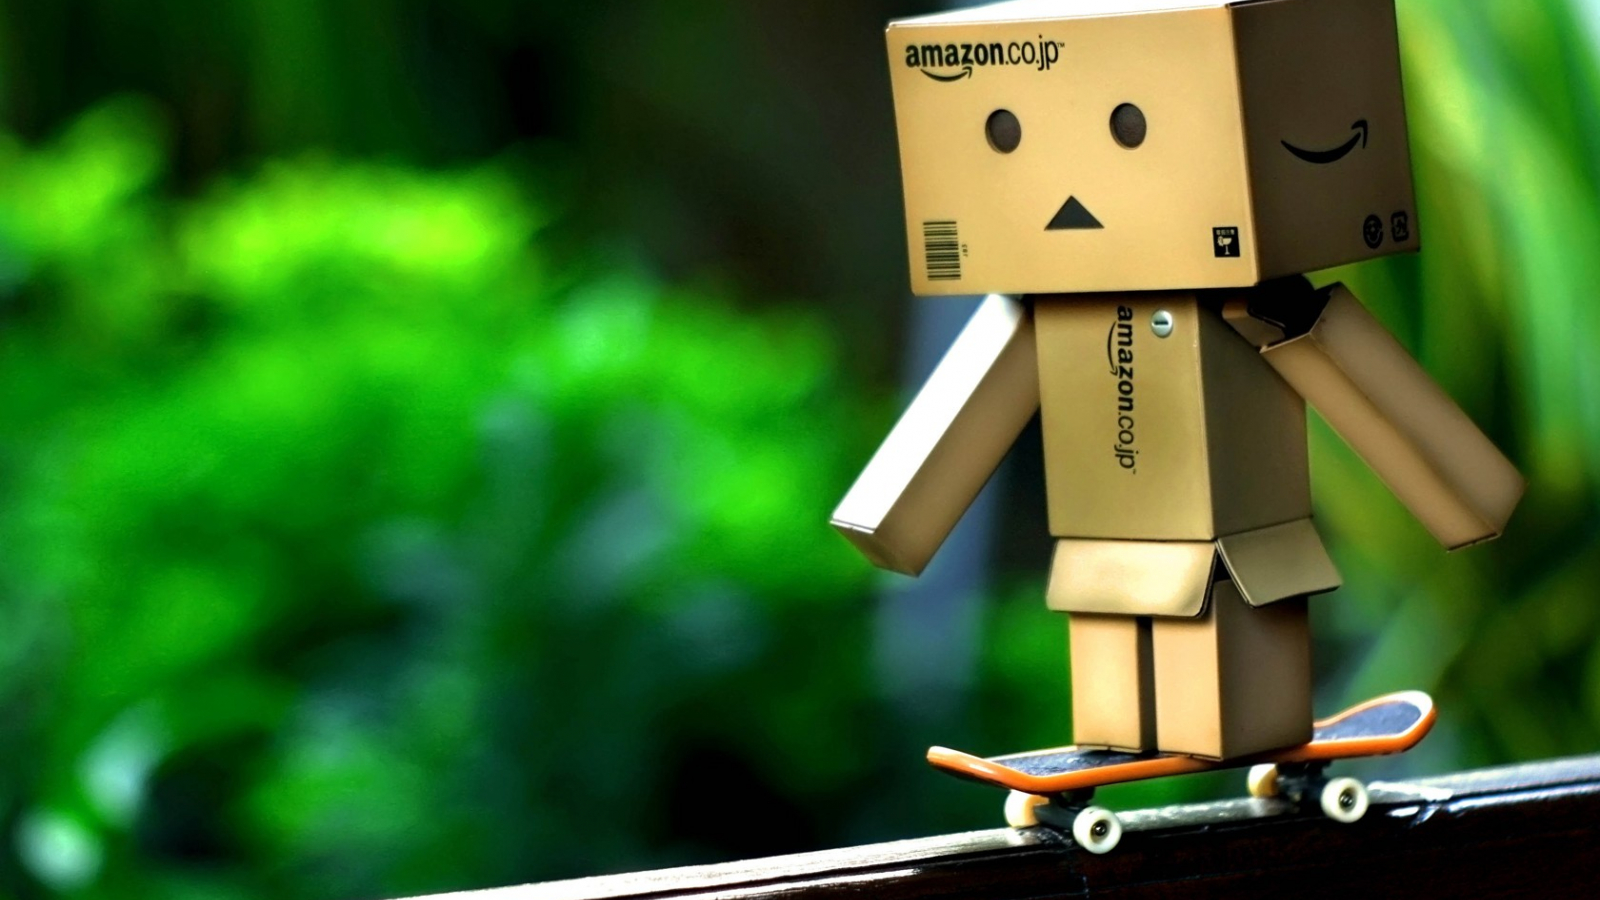 Free Download Danboard Danbo Yellow Little Box Boy Amazon Hd